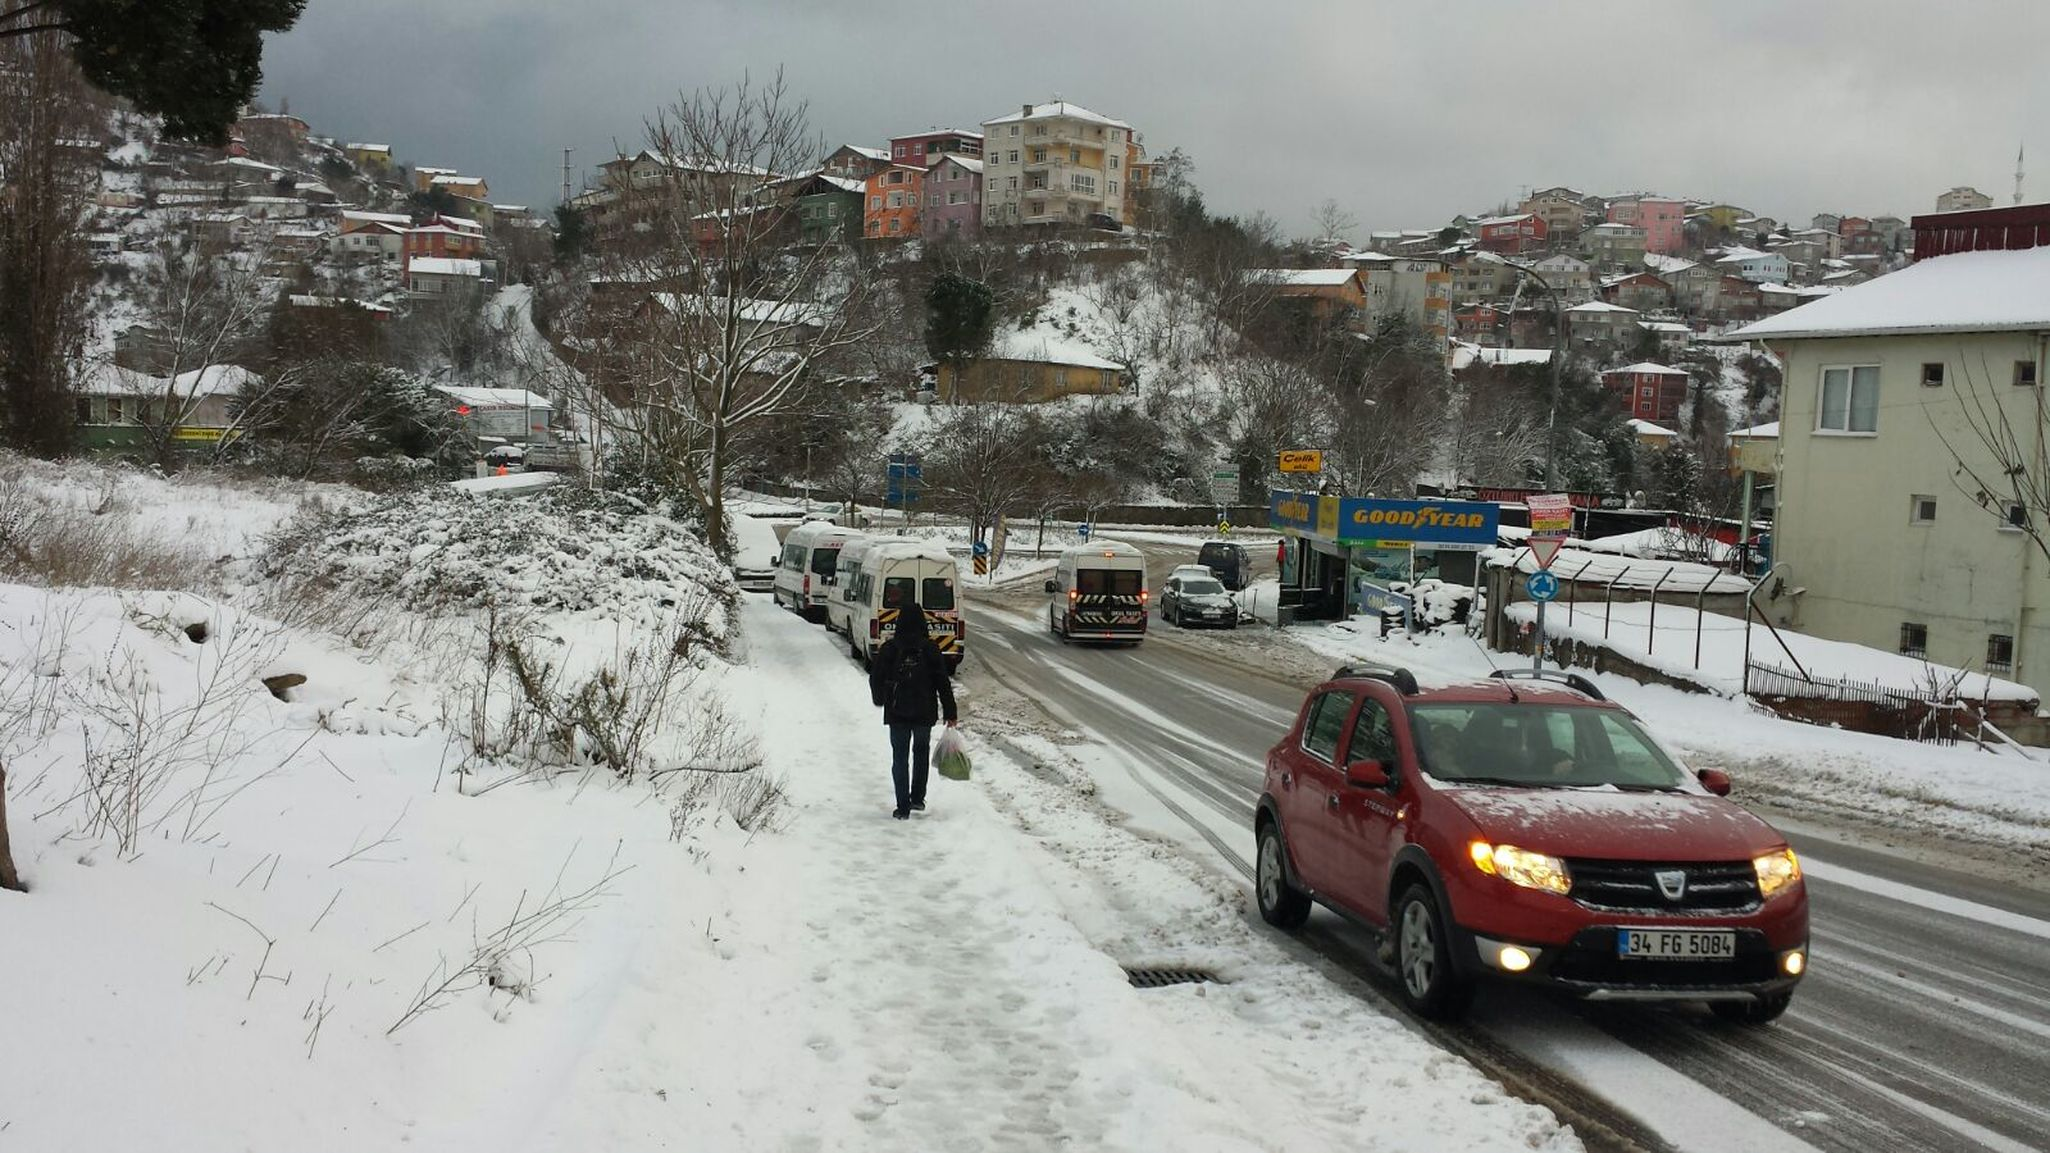 It's Cold Outside not easy to walk but funny 😂 Happynewyear2016 Happynewyear Cold Snow ❄ Greetings Fromistanbul Love ♥